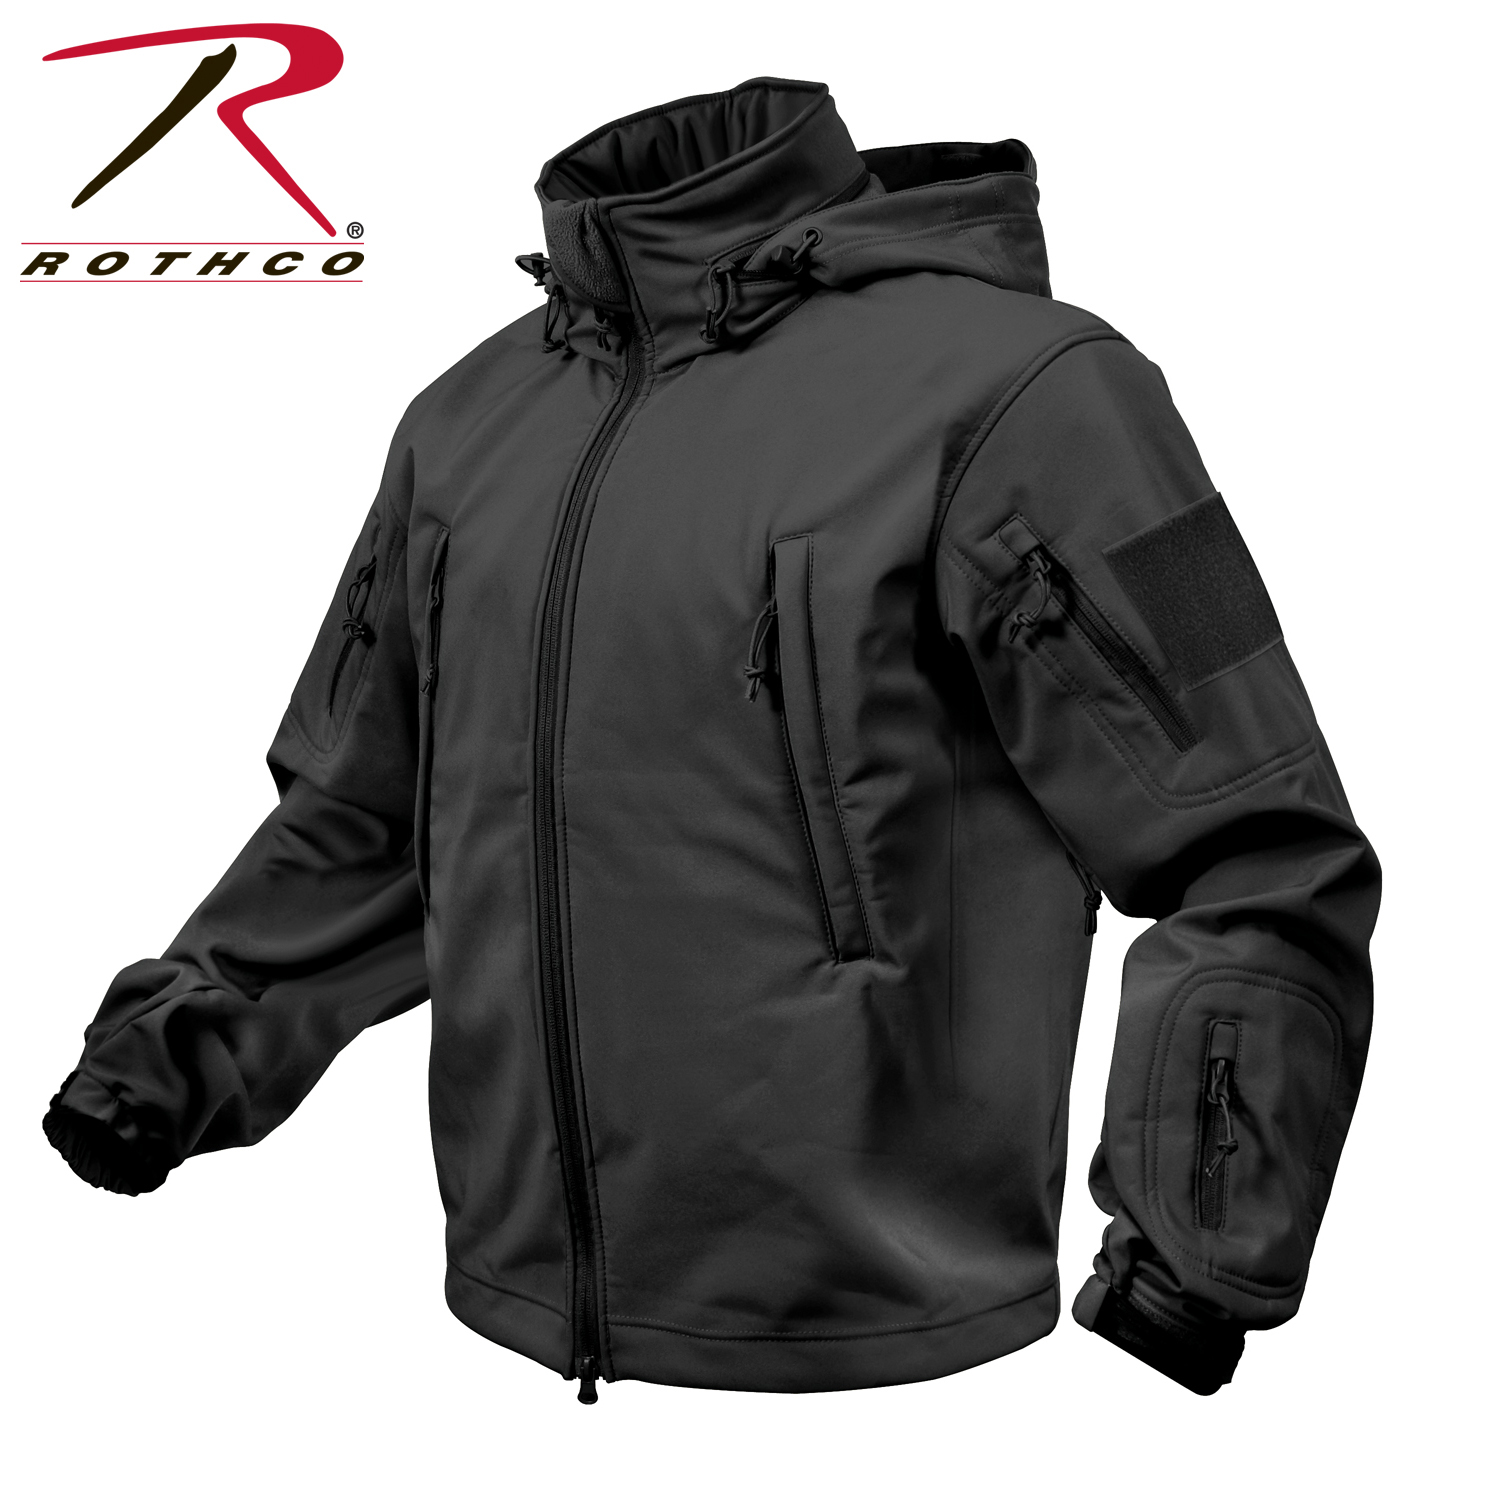 Rothco Special Ops Tactical Soft Shell Jacket c76405f9950